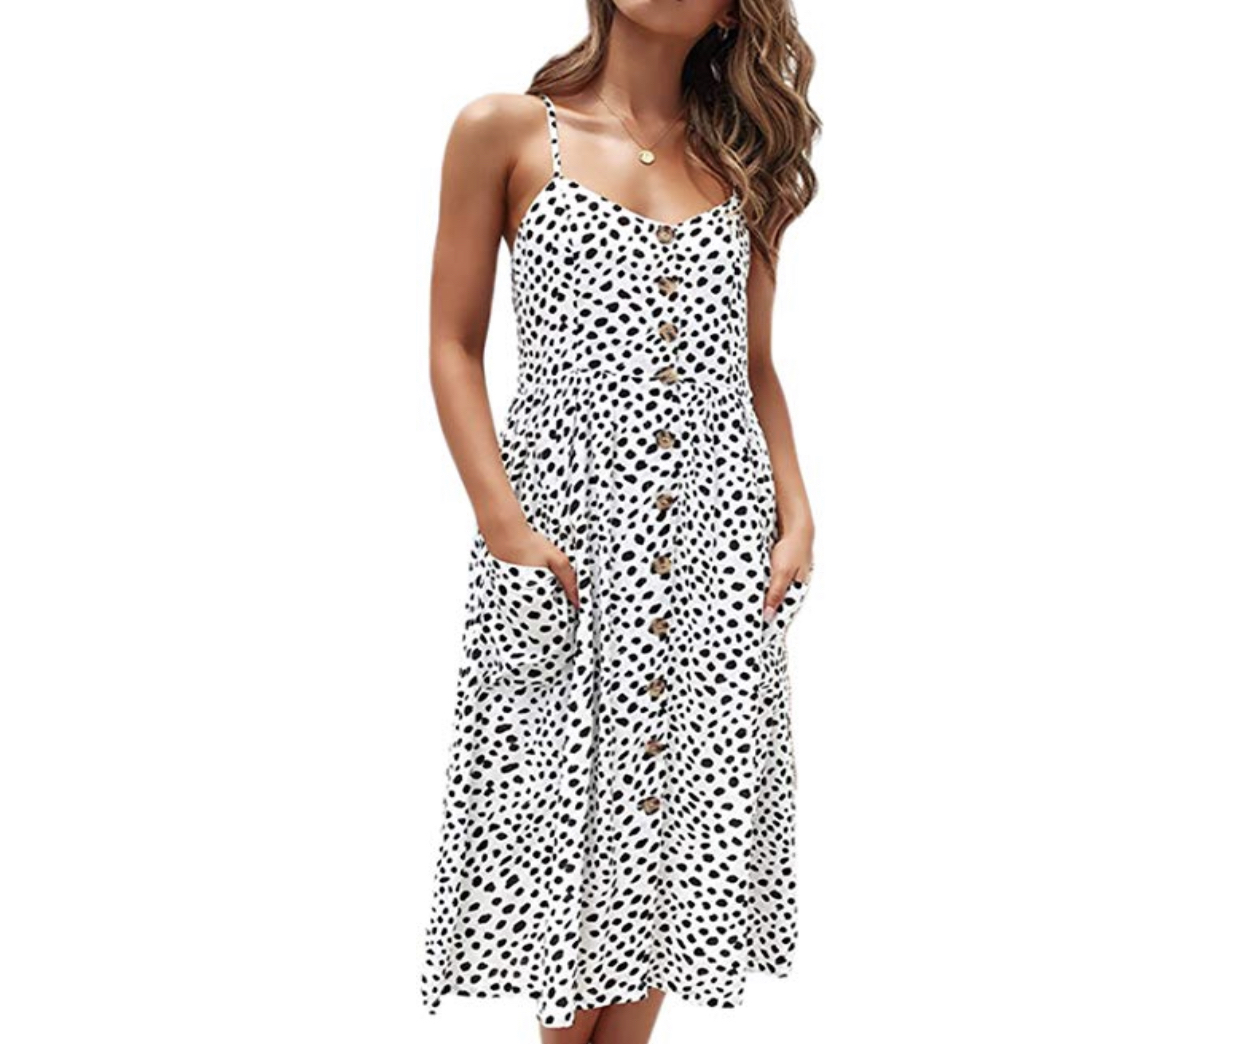 transitional spring outfits, amazon fashion, black spotted spaghetti strap sundress